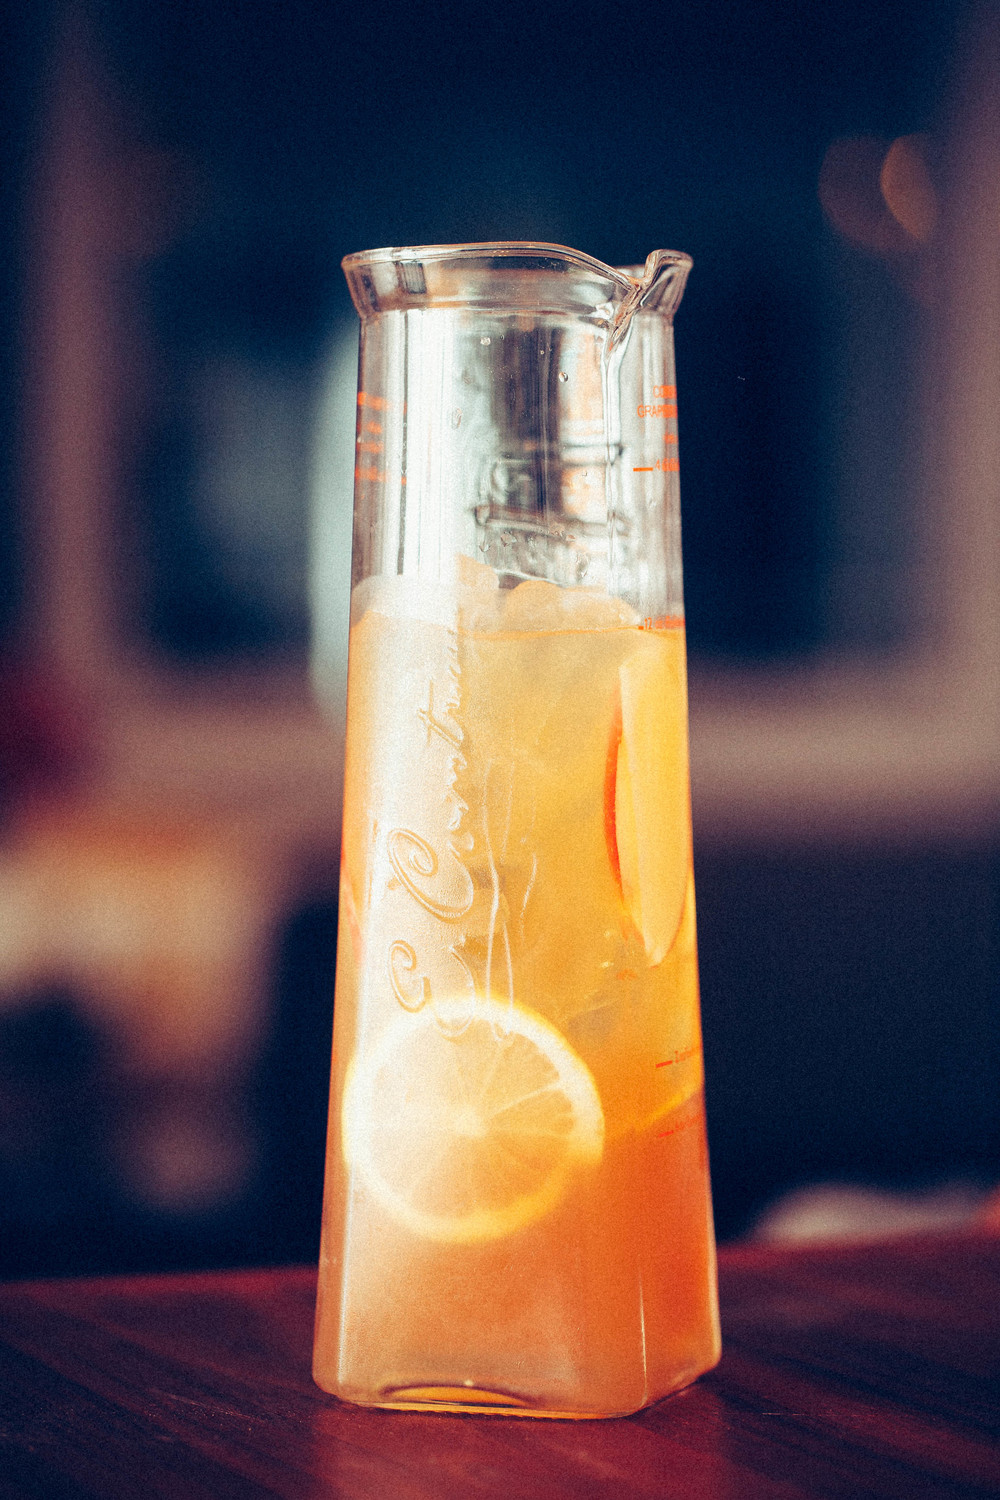 Central Provisions' West End Punch